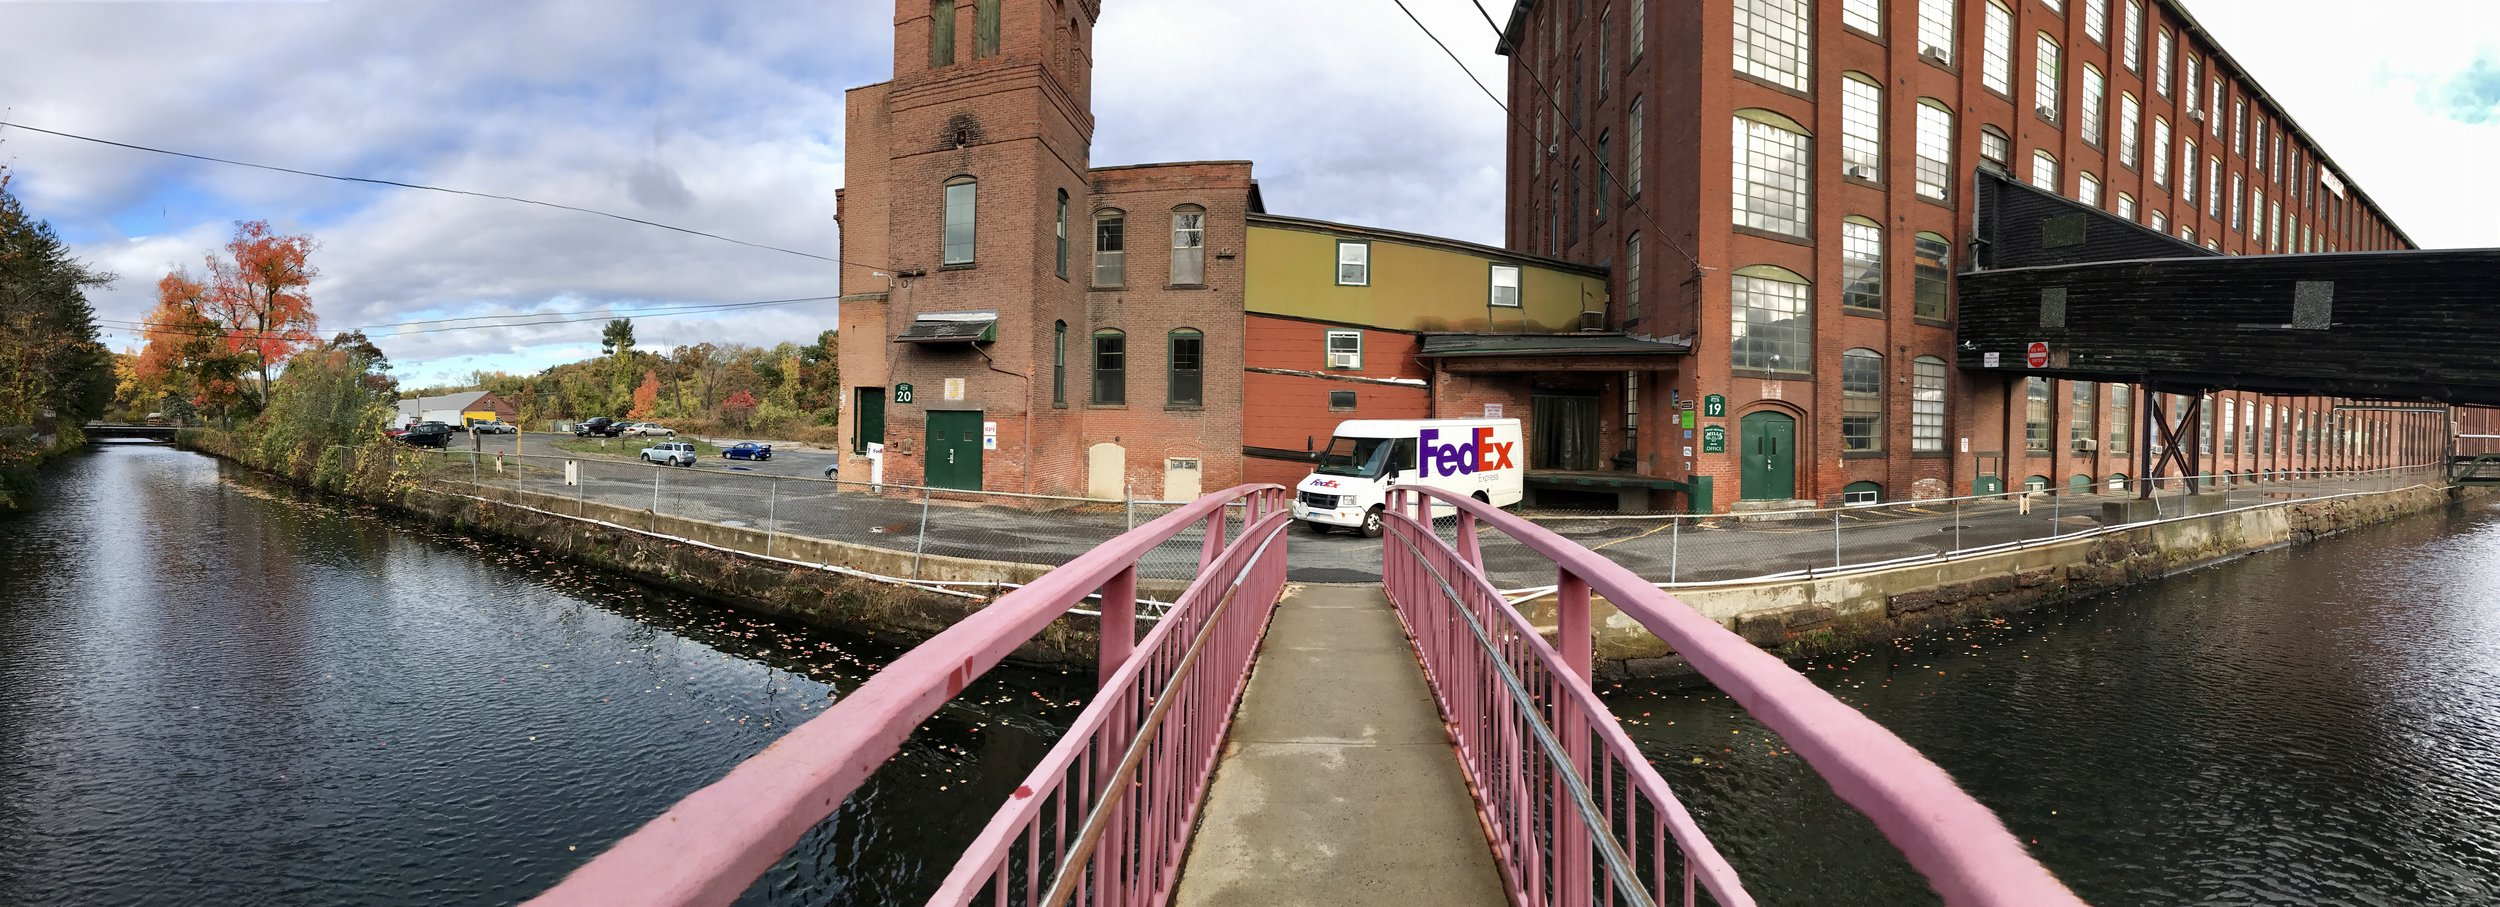 PANO IMAGE OF INSIDE PARKING LOT AND ENTRANCE 19 TO DAVE'S STUDIO